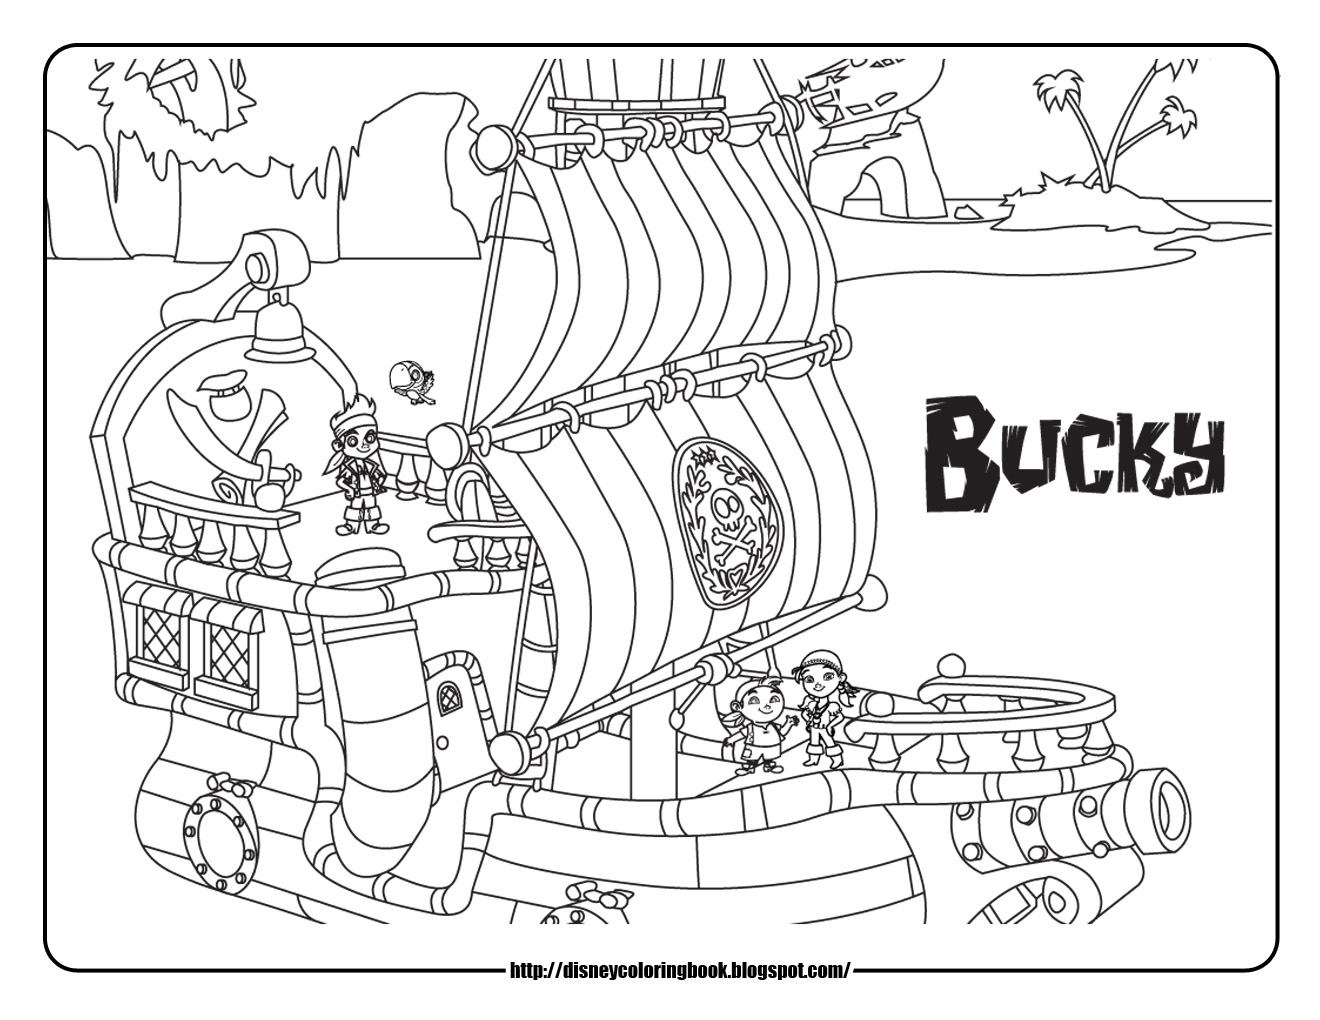 jake and the neverland pirates coloring pages pdf - jake and the neverland pirates 2 free disney coloring